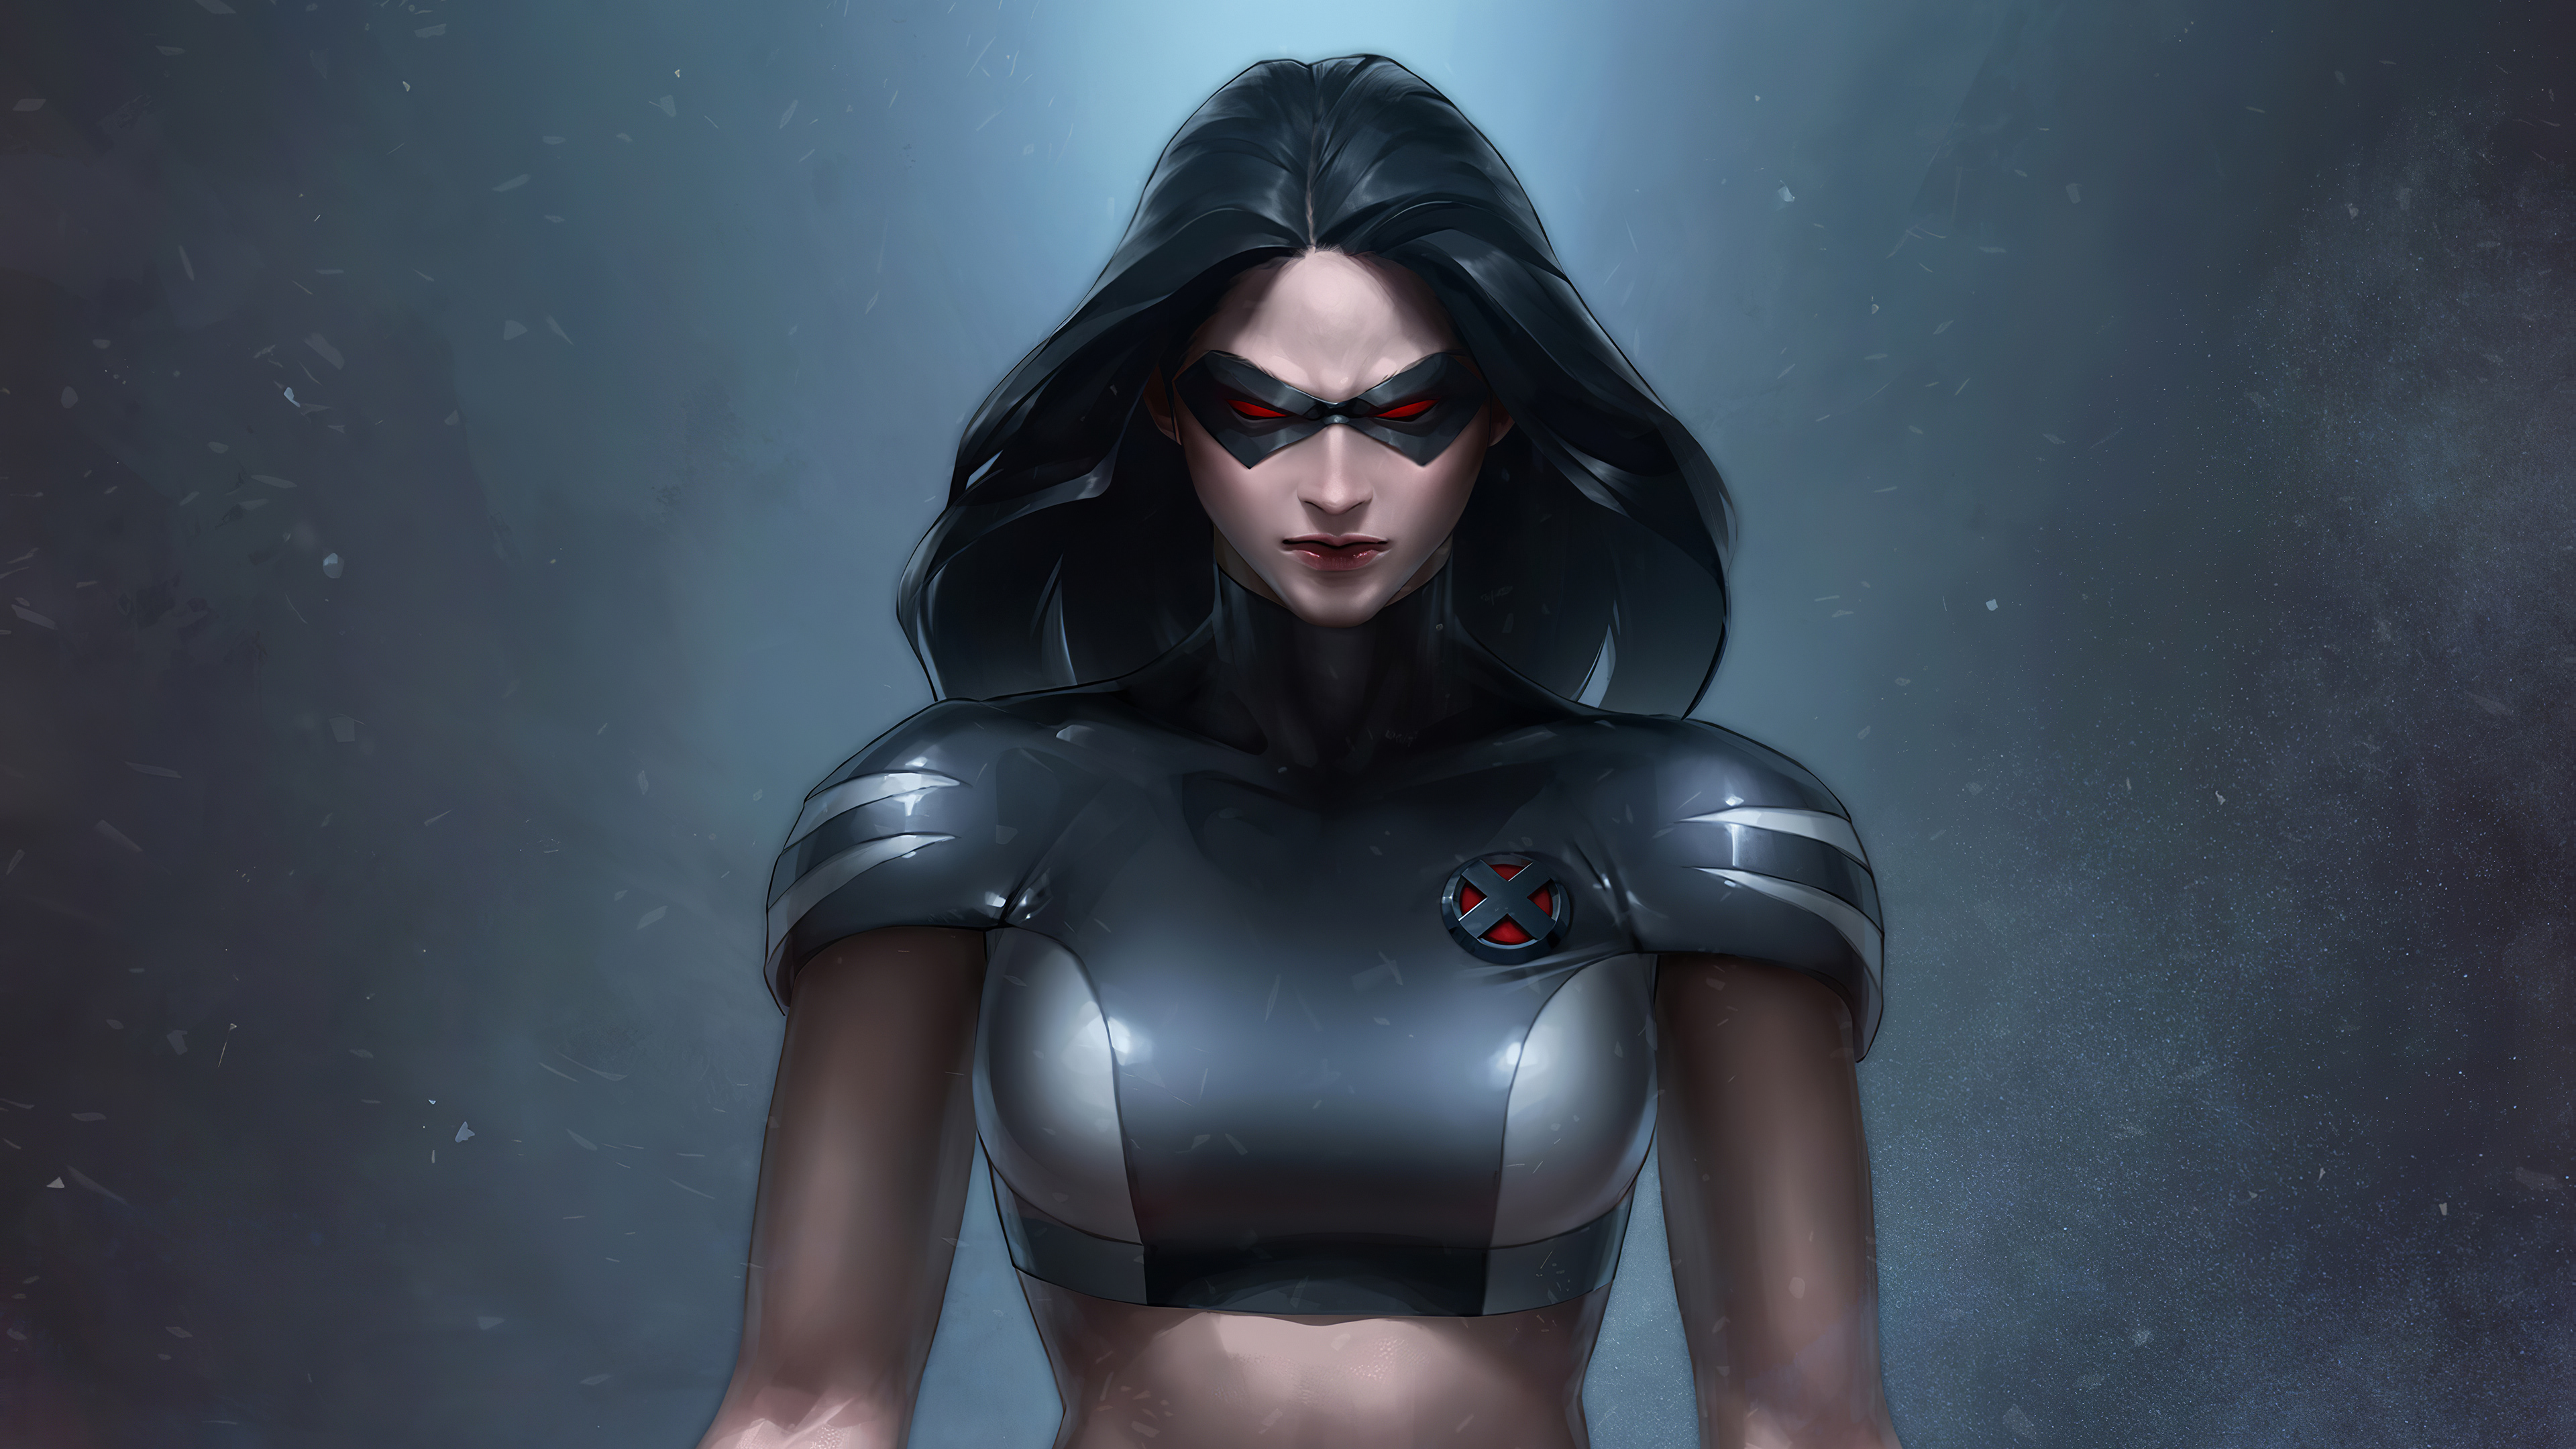 x 23 x force 1572368500 - X 23 X Force - x 23 wallpapers, wolverine wallpapers, superheroes wallpapers, hd-wallpapers, digital art wallpapers, artwork wallpapers, artstation wallpapers, artist wallpapers, 4k-wallpapers